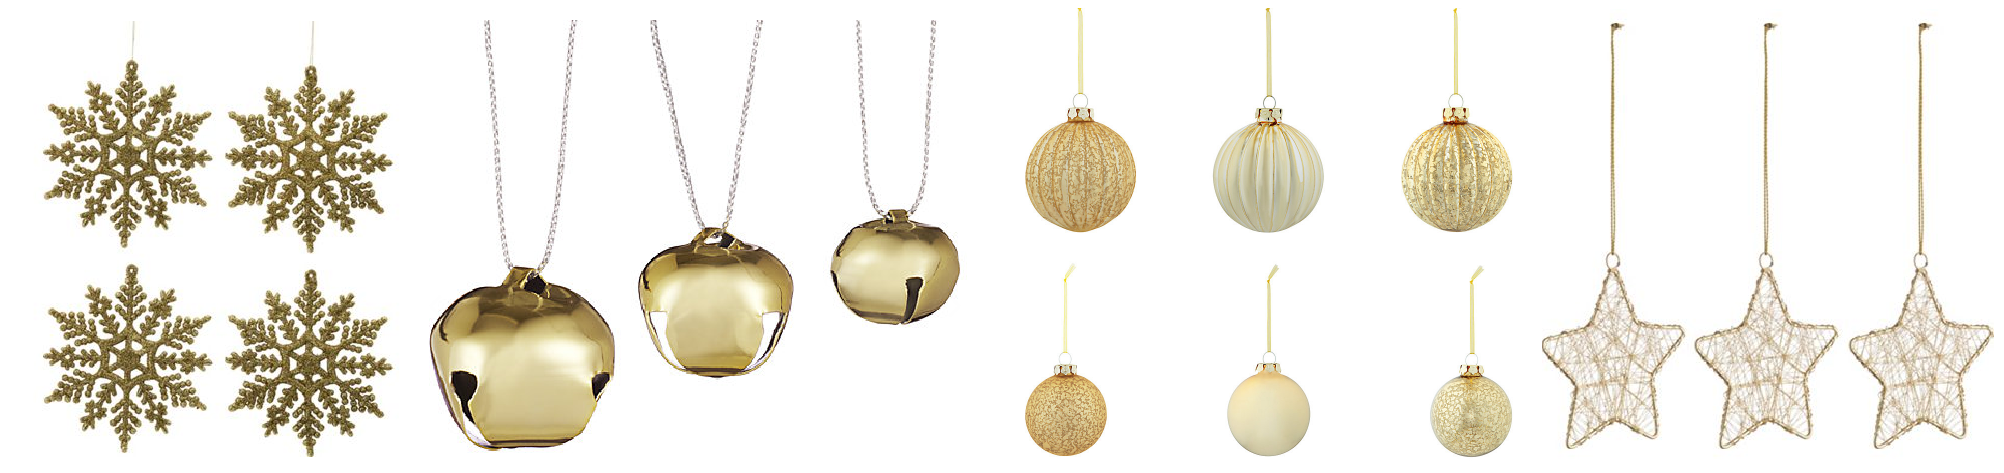 Glittering Gold Christmas Decorations